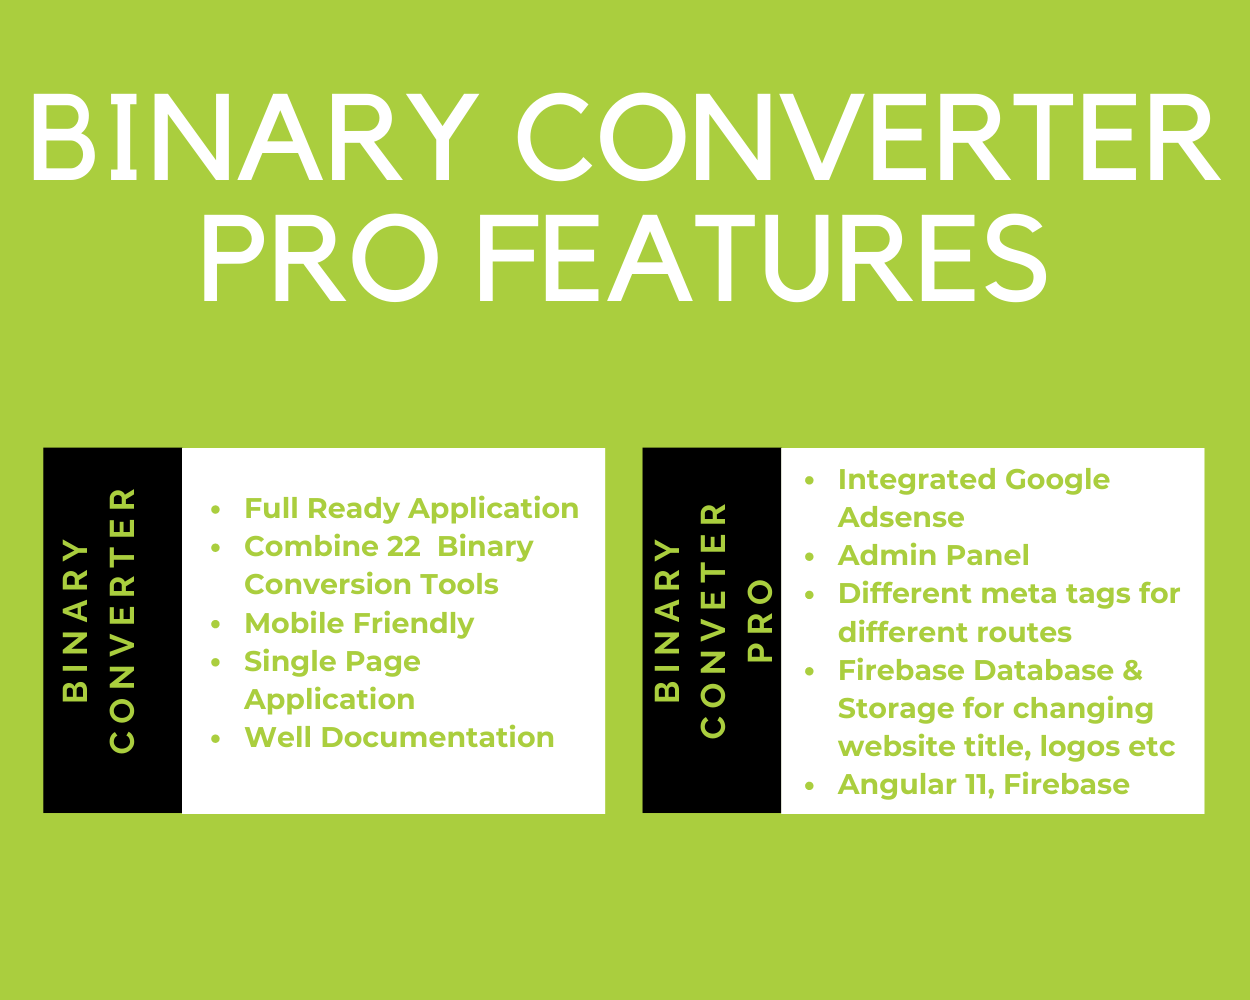 Online Binary Converter Pro (Angular 11 & Firebase) Full Production Ready App (Admin Panel, Adsense) - 7